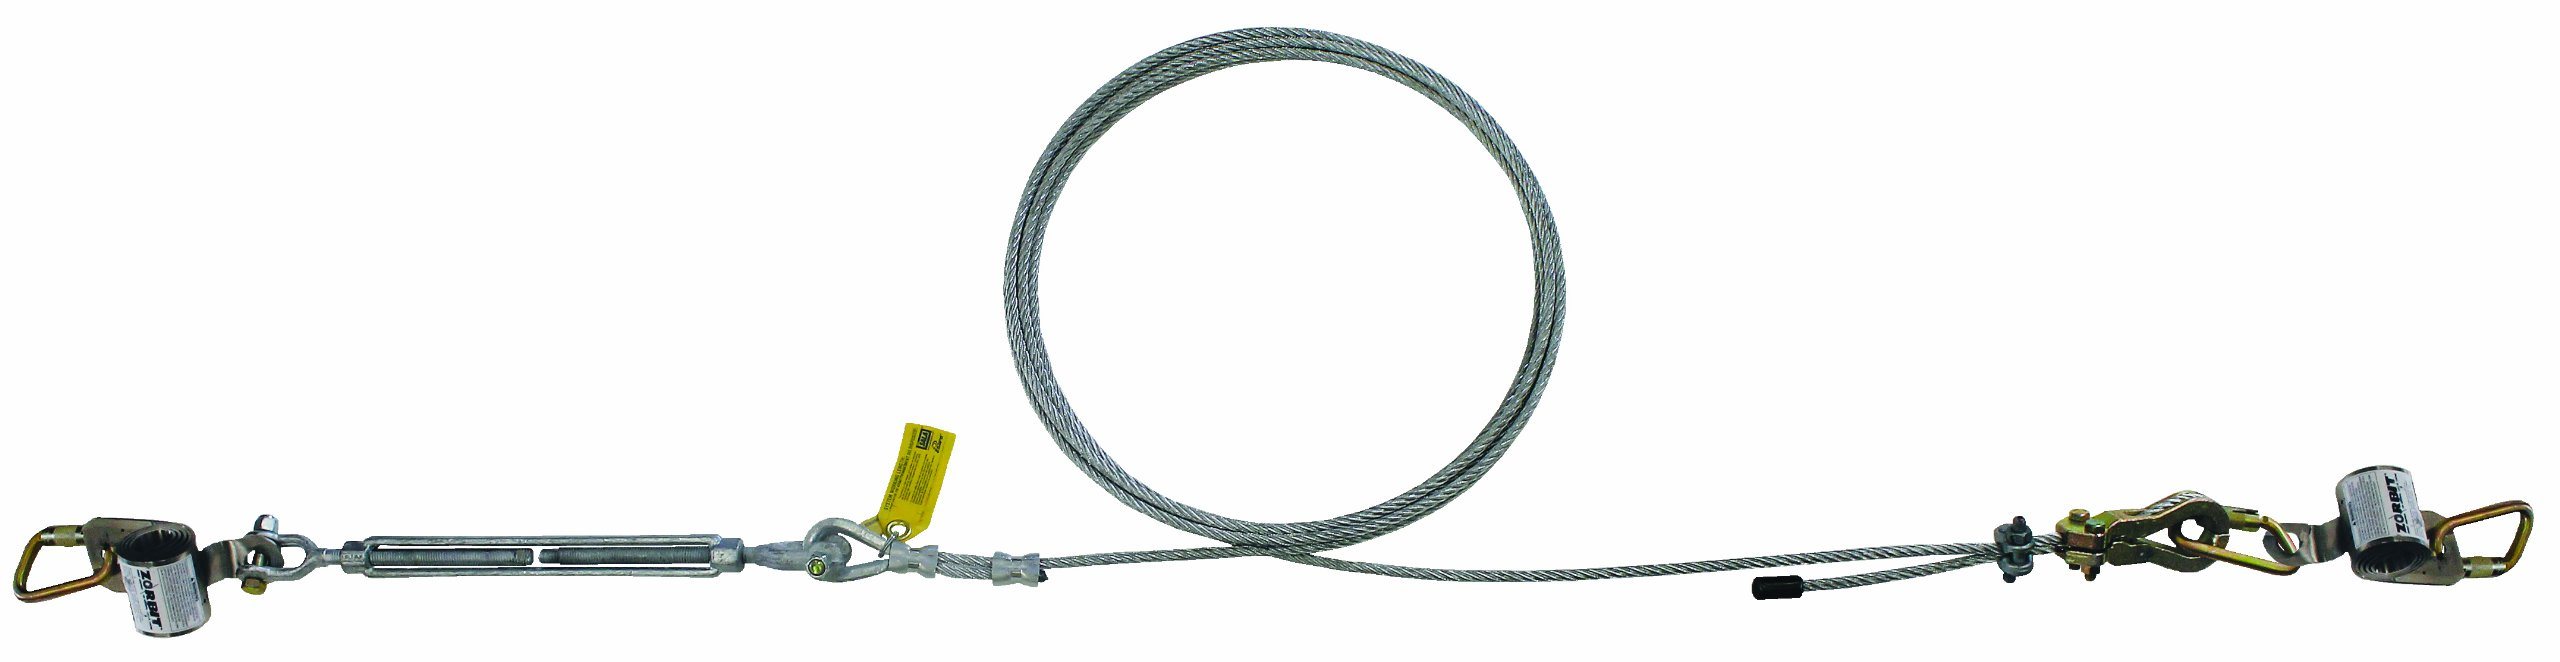 3M DBI-SALA SecuraSpan 7403180 Horizontal System, 180' Galvanized Cable Lifeline, Includes Tensioner, Termination and Mounting Hardware, Zorbit Energy Absorber